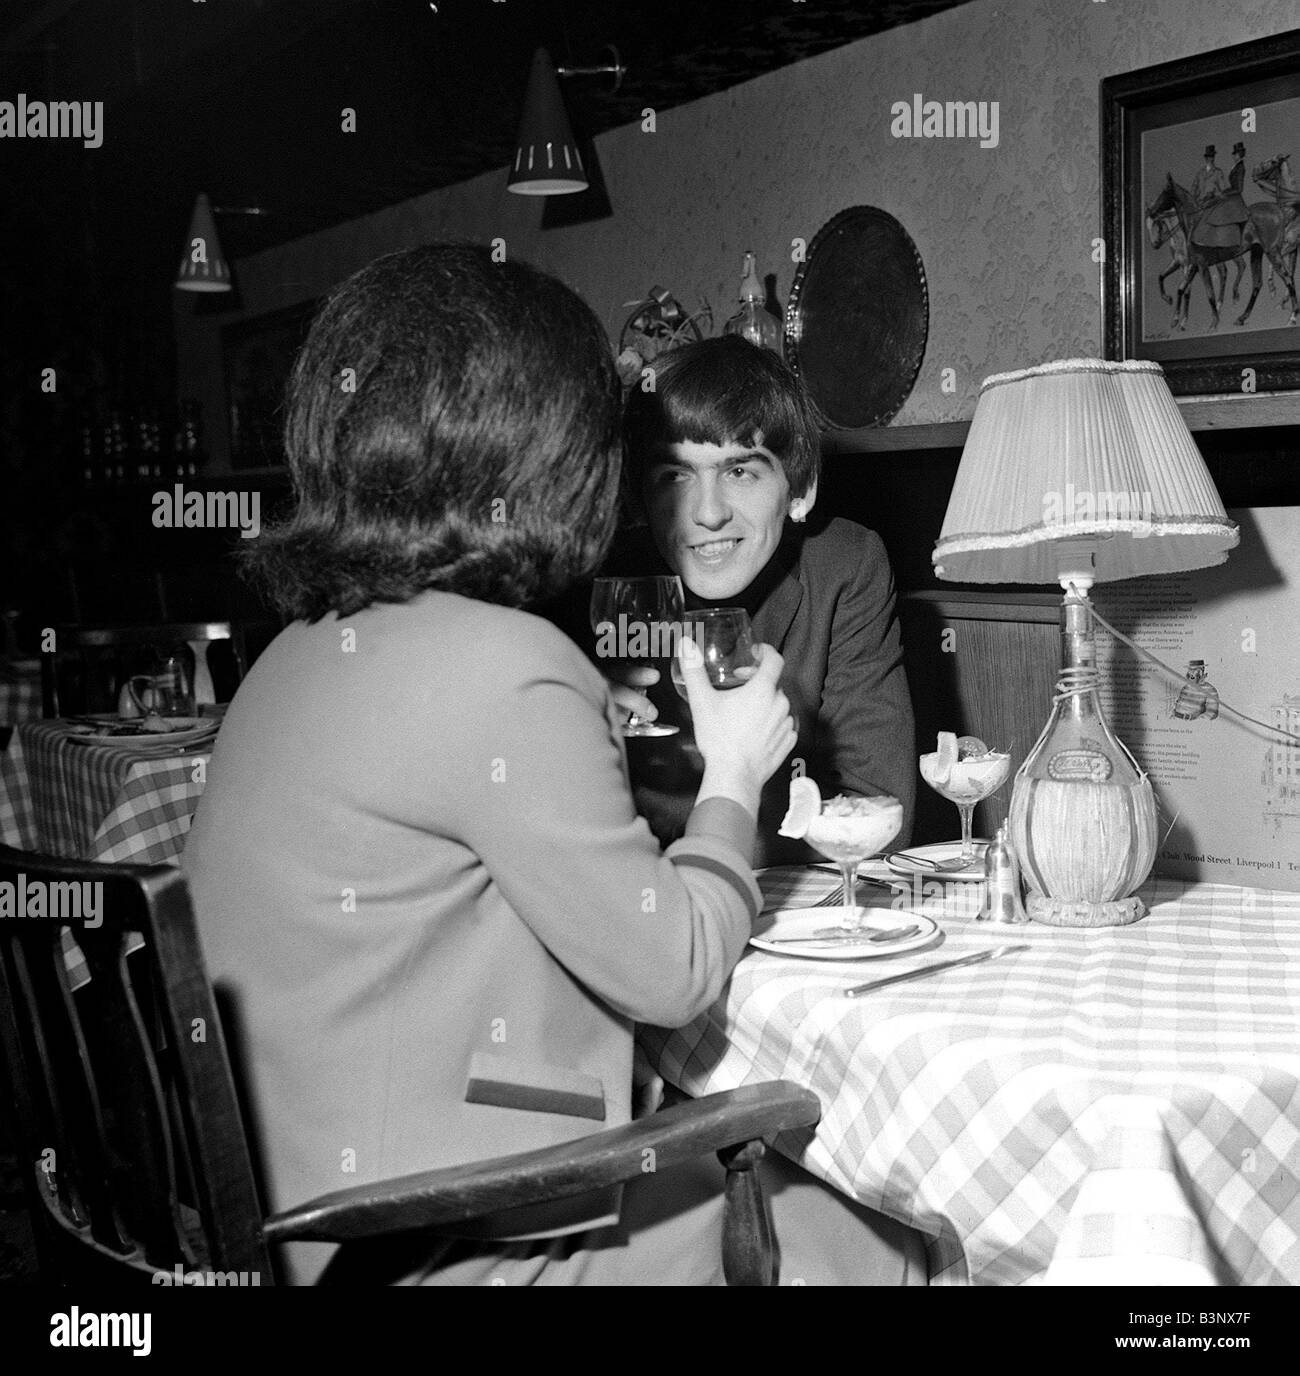 The Beatles February 1964 George Harrison With A Girl He Took Out To Dinner In Liverpool Club Last Night